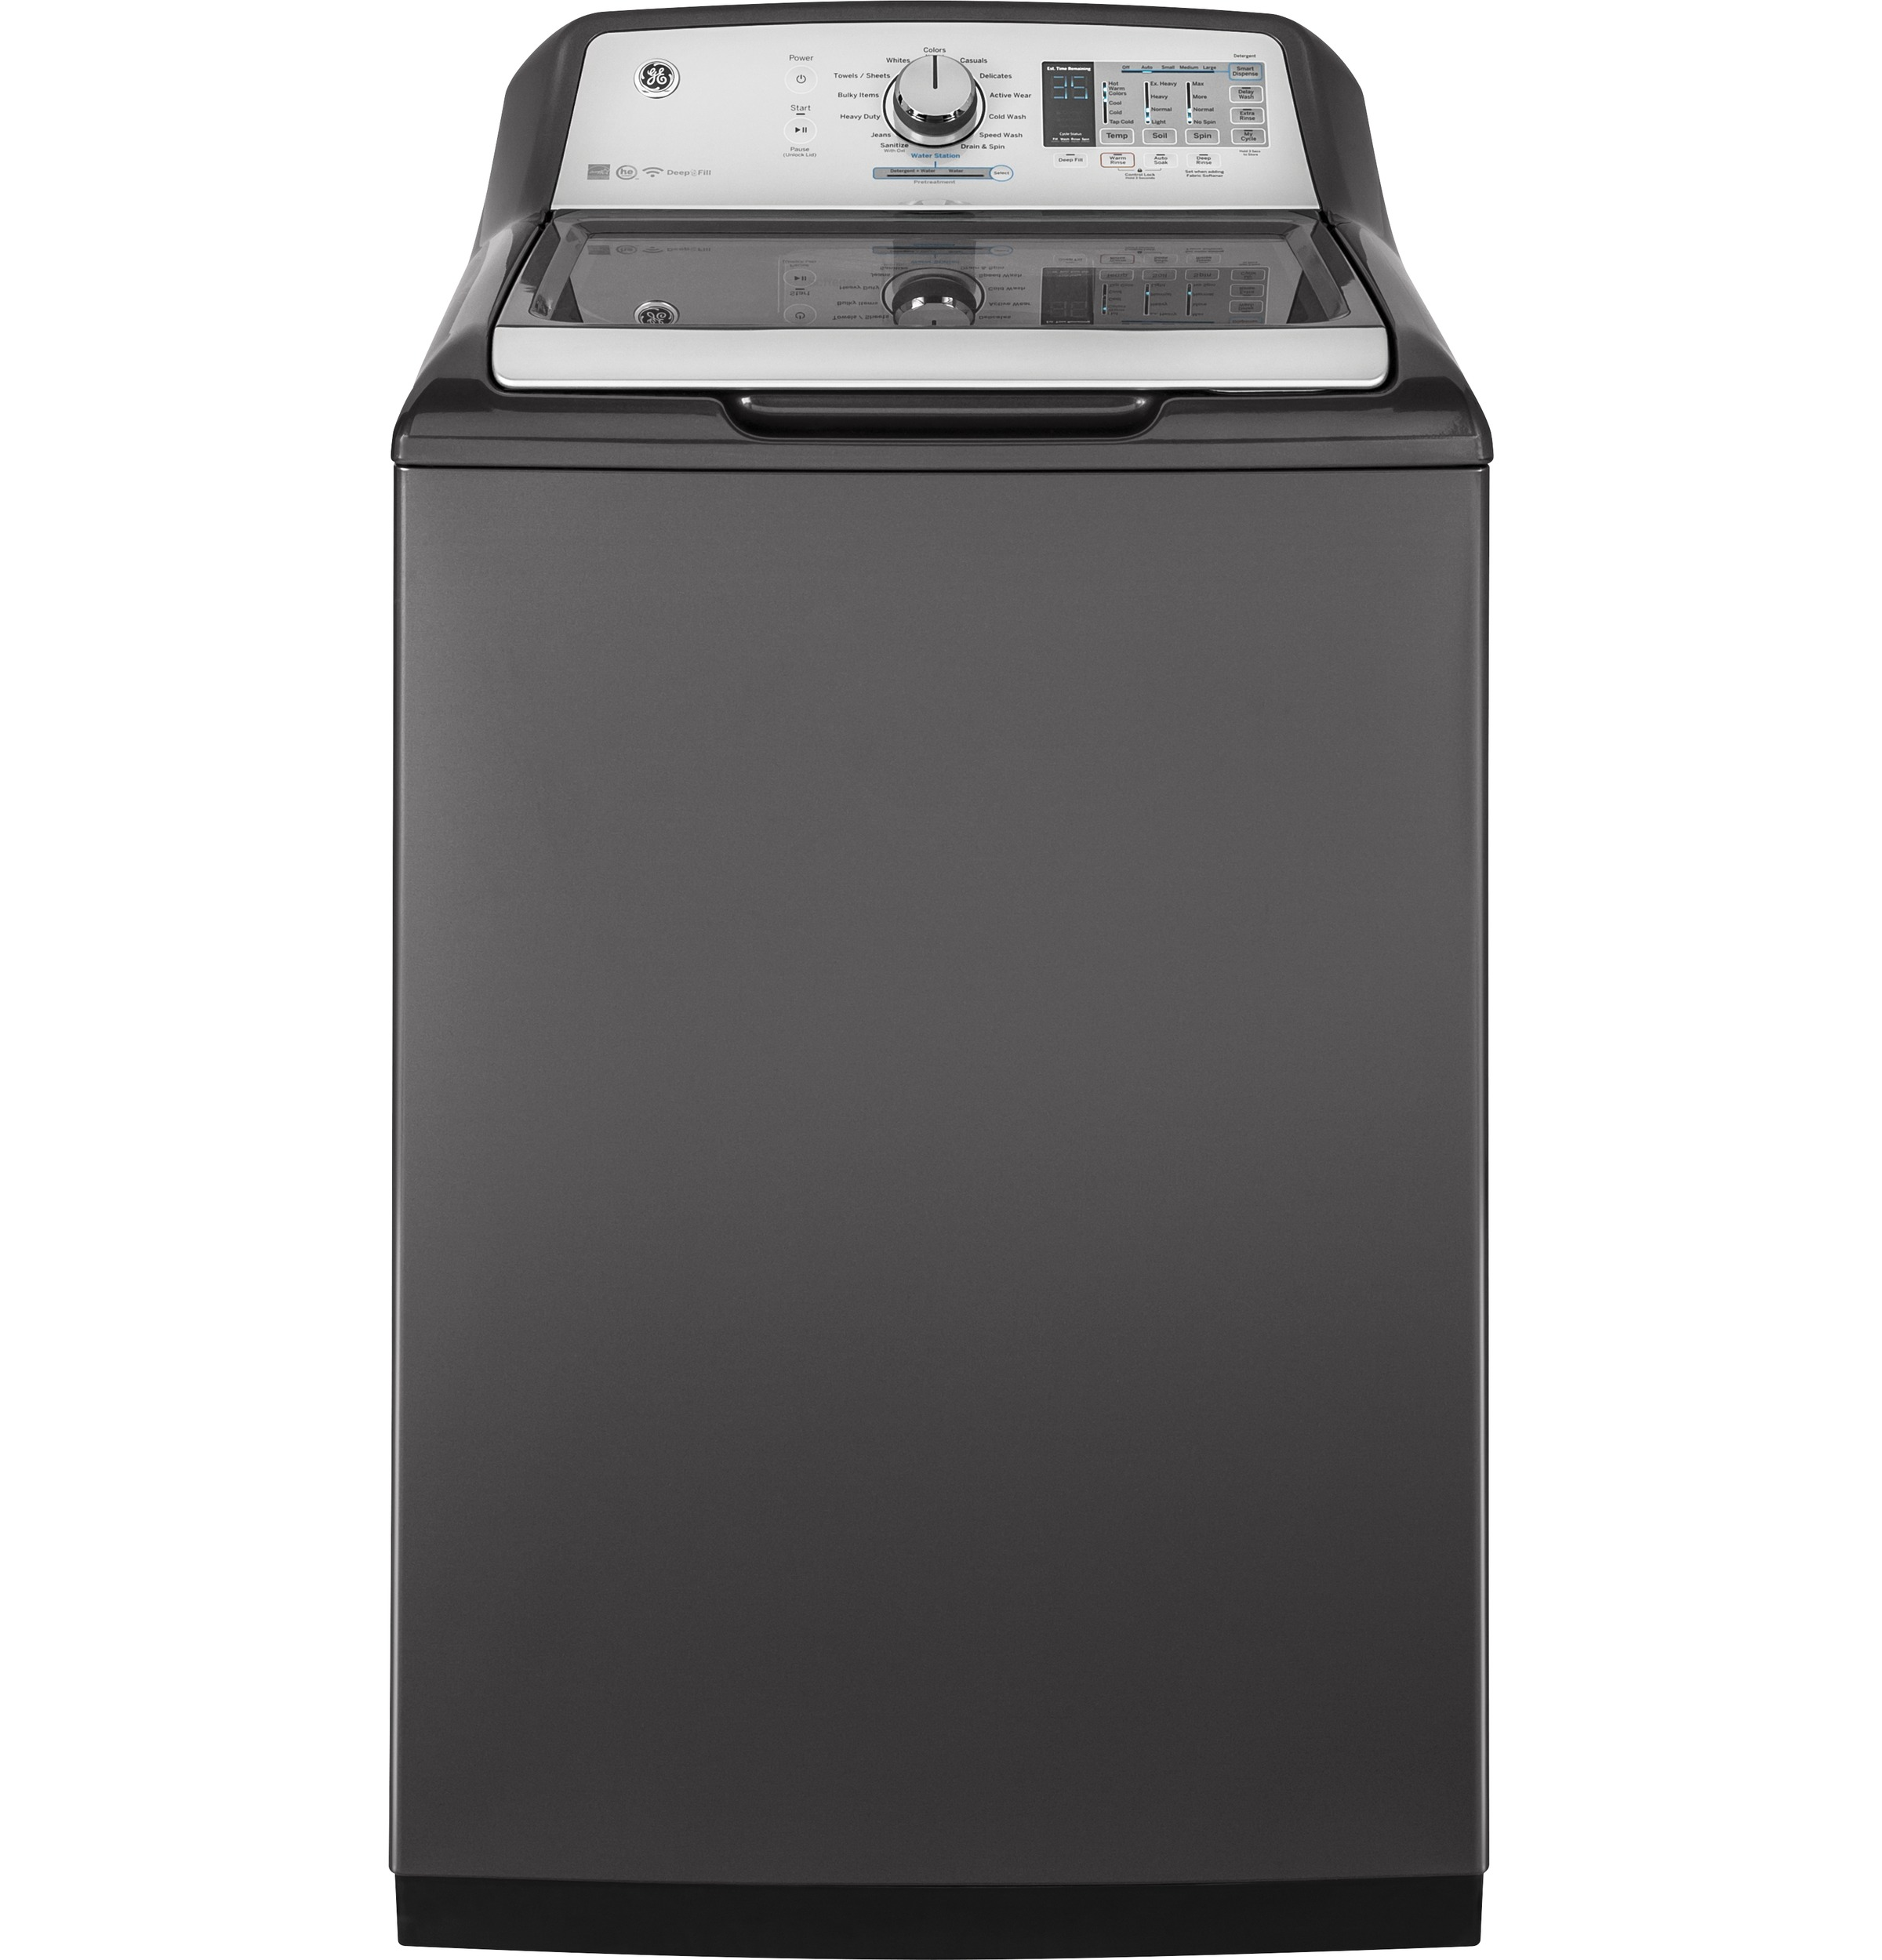 Model: GTW750CPLDG | GE GE® 5.0  cu. ft. Capacity Washer with Stainless Steel Basket